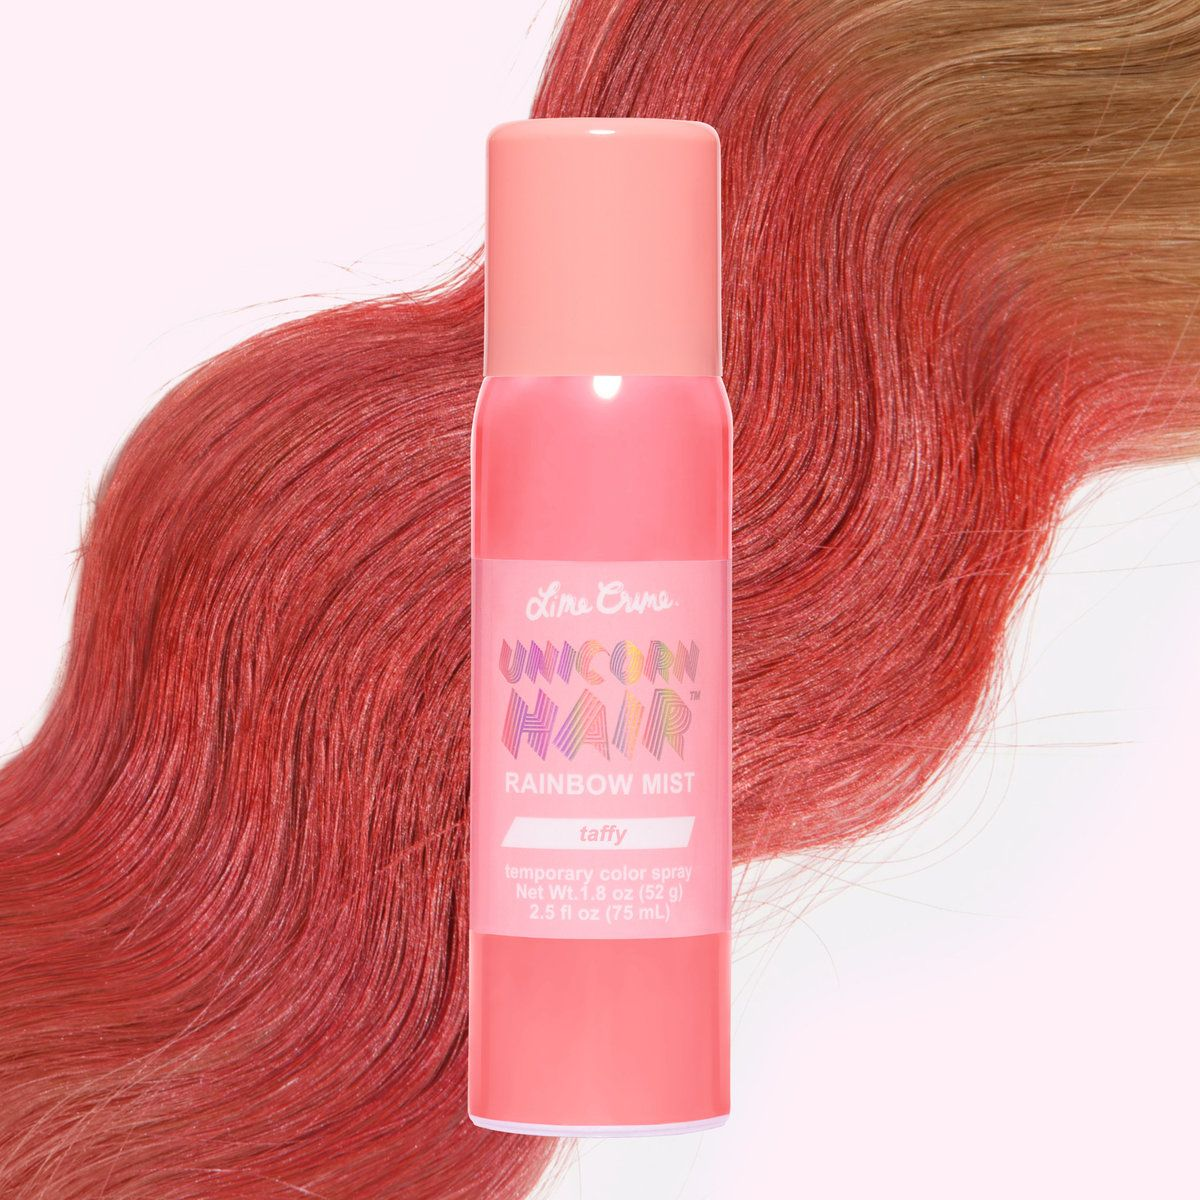 Taffy Hair Color Spray Bright Pink With Images Hair Tint Pink Hair Spray Hair Color Spray